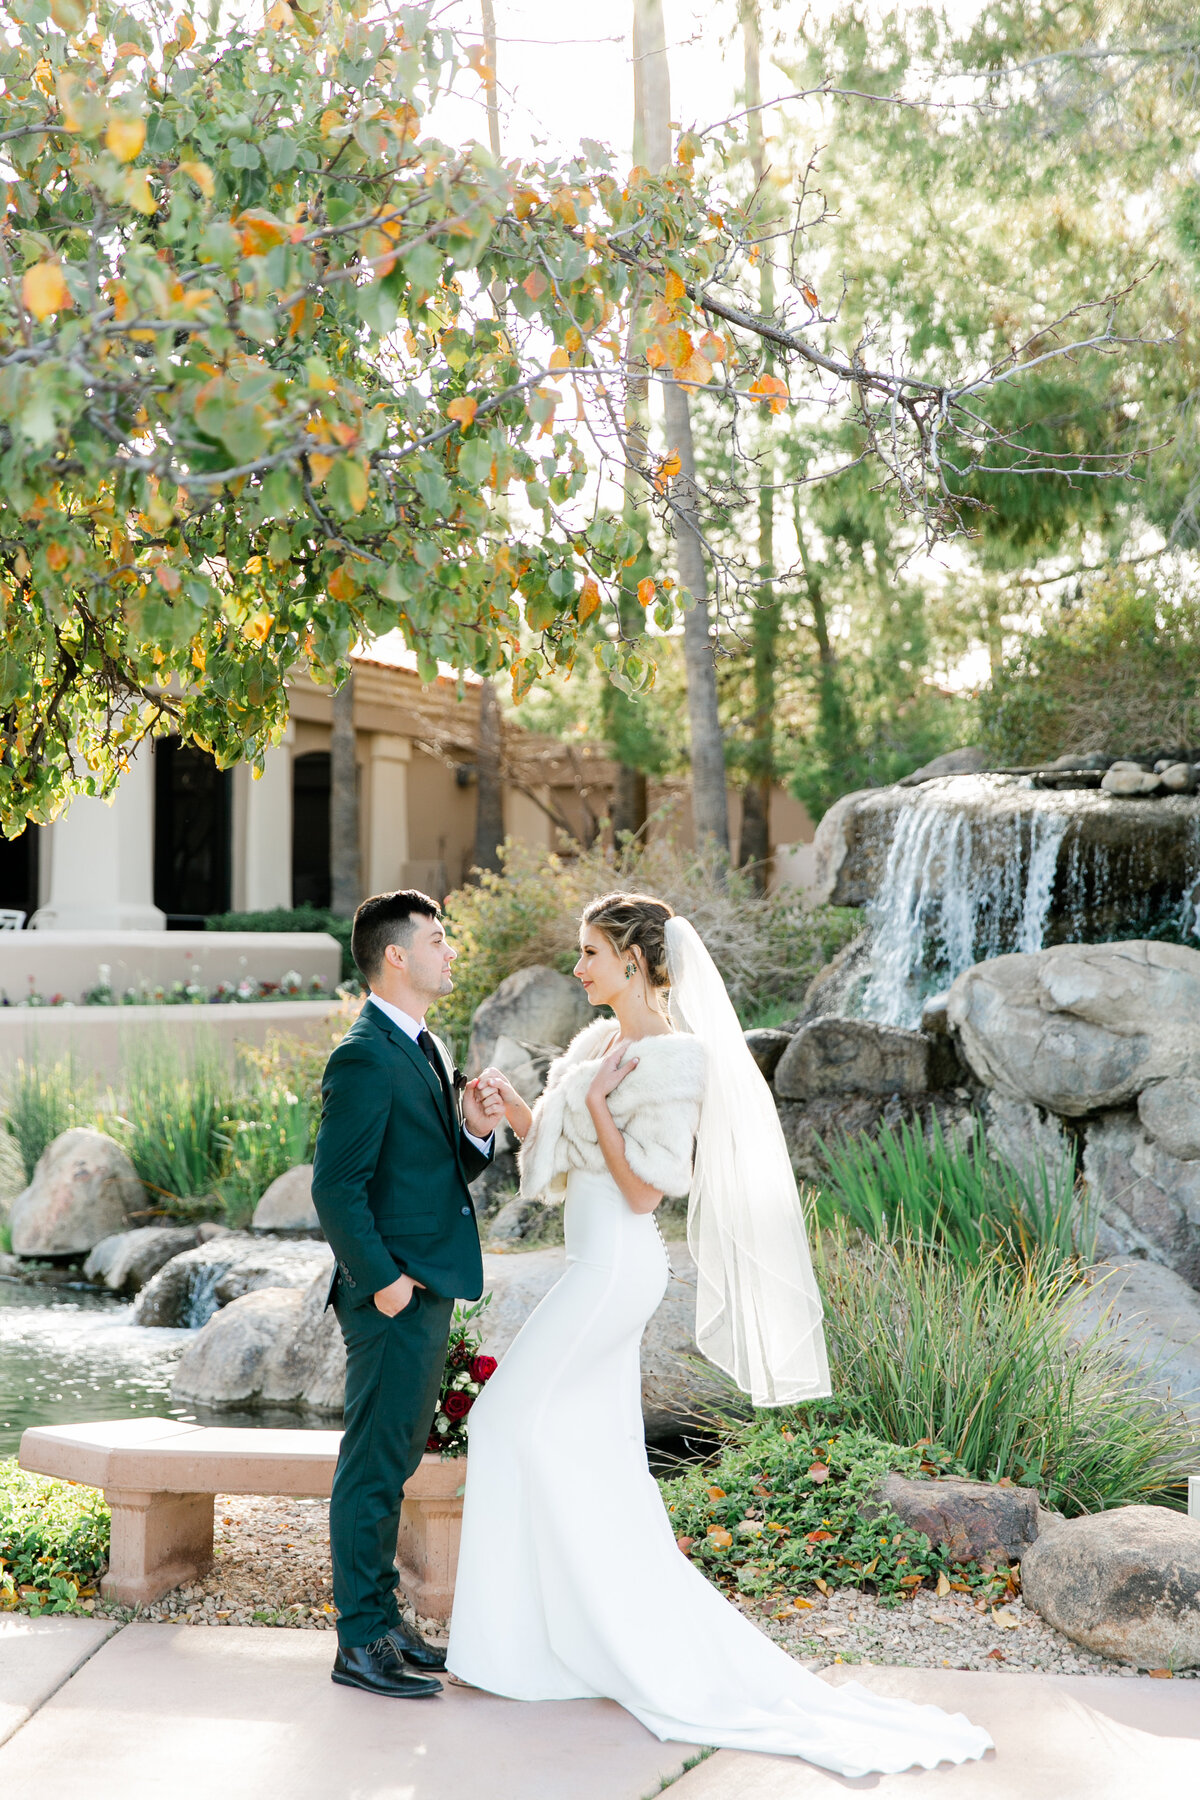 Karlie Colleen Photography - Gilbert Arizona Wedding - Val Vista Lakes - Brynne & Josh-473